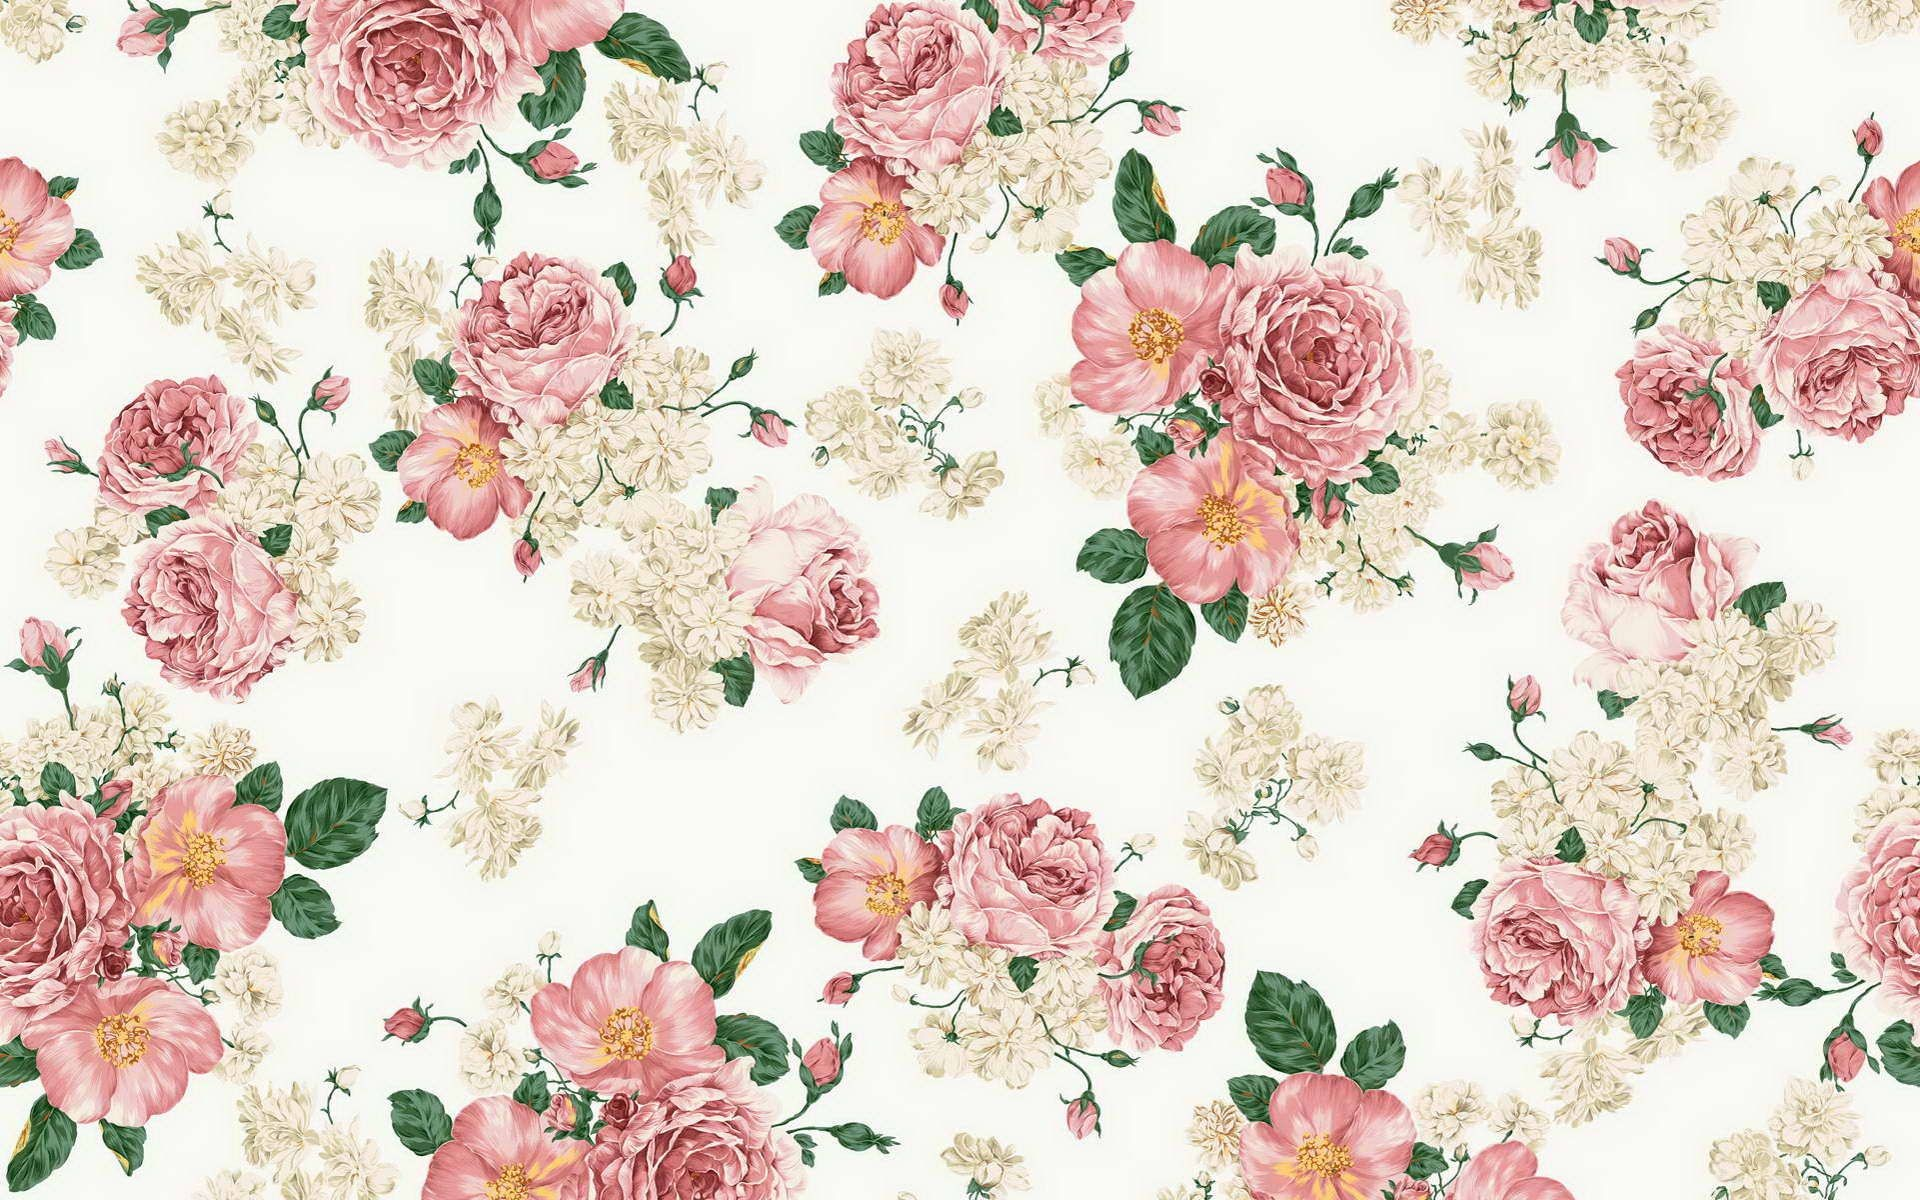 Tumblr Flower Backgrounds